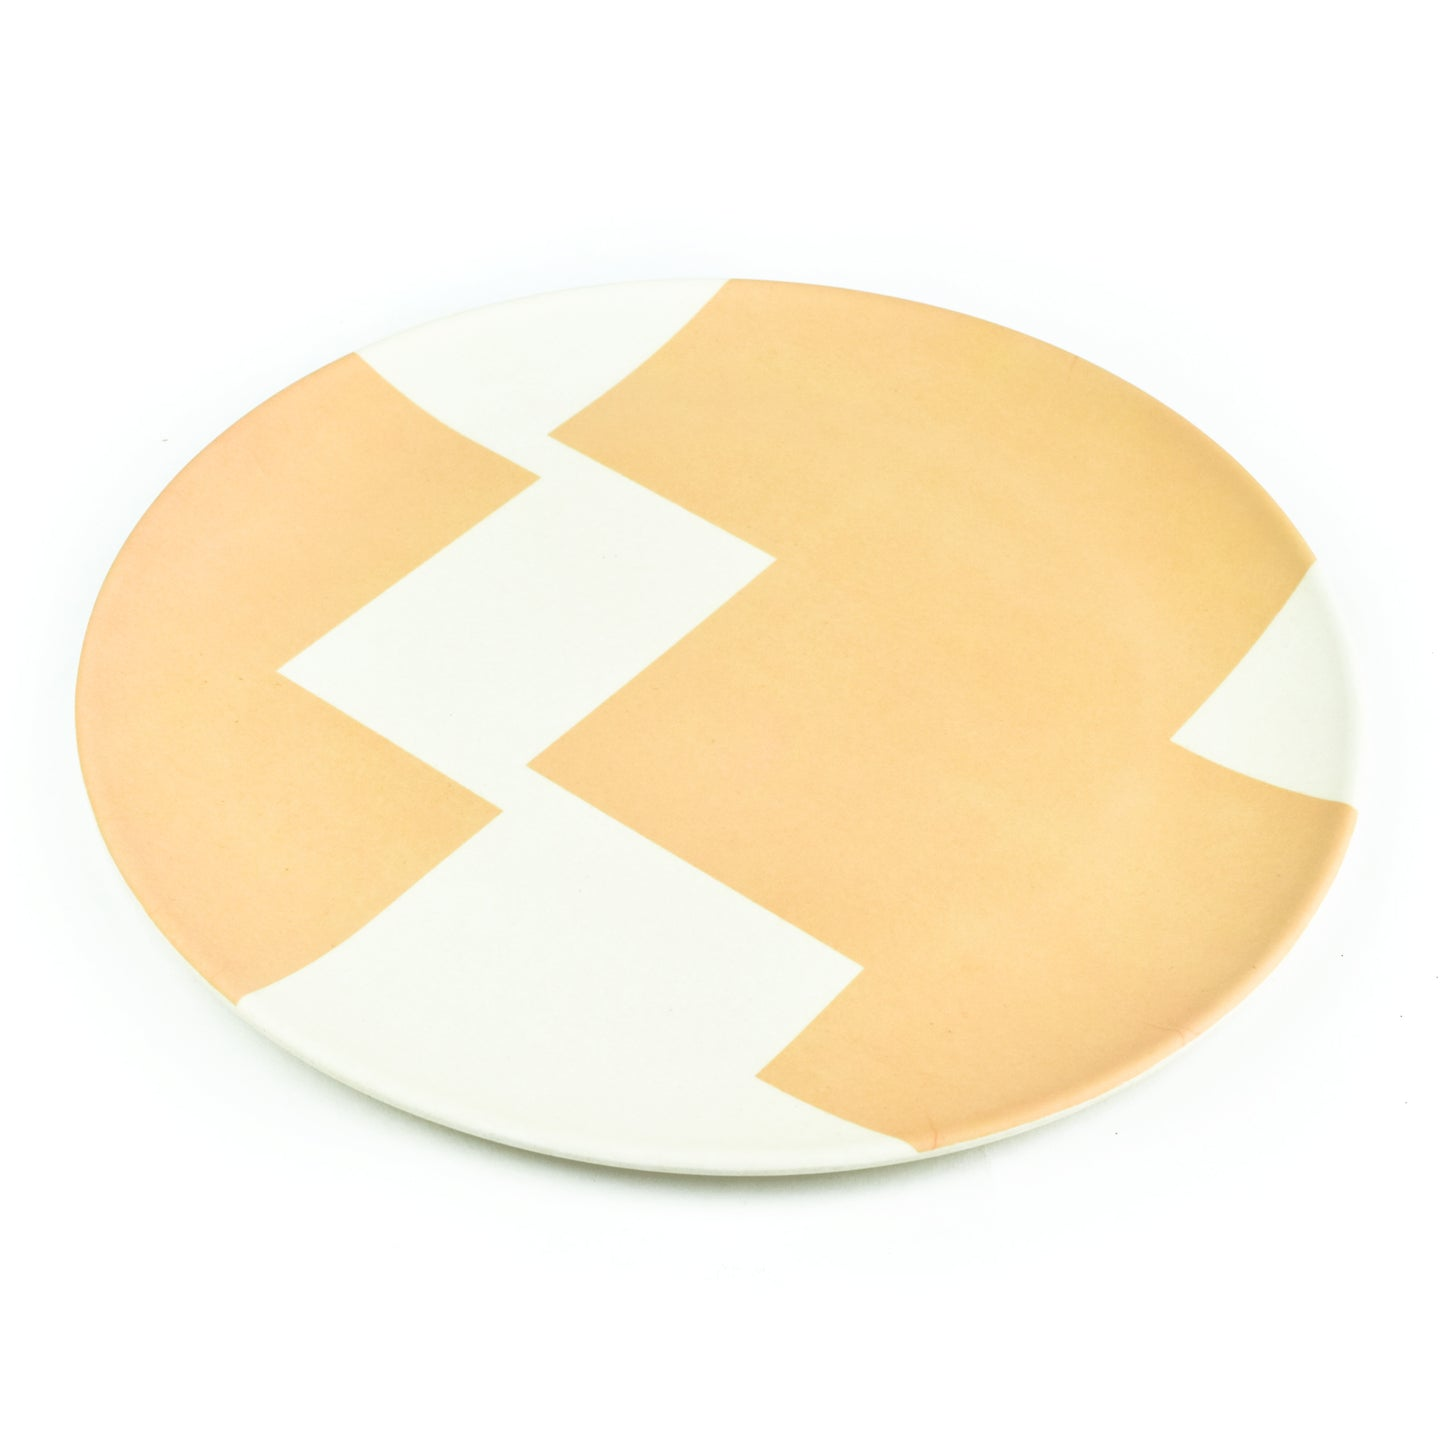 Reusable Bamboo Patterned Dinner Plates (Set of 4)